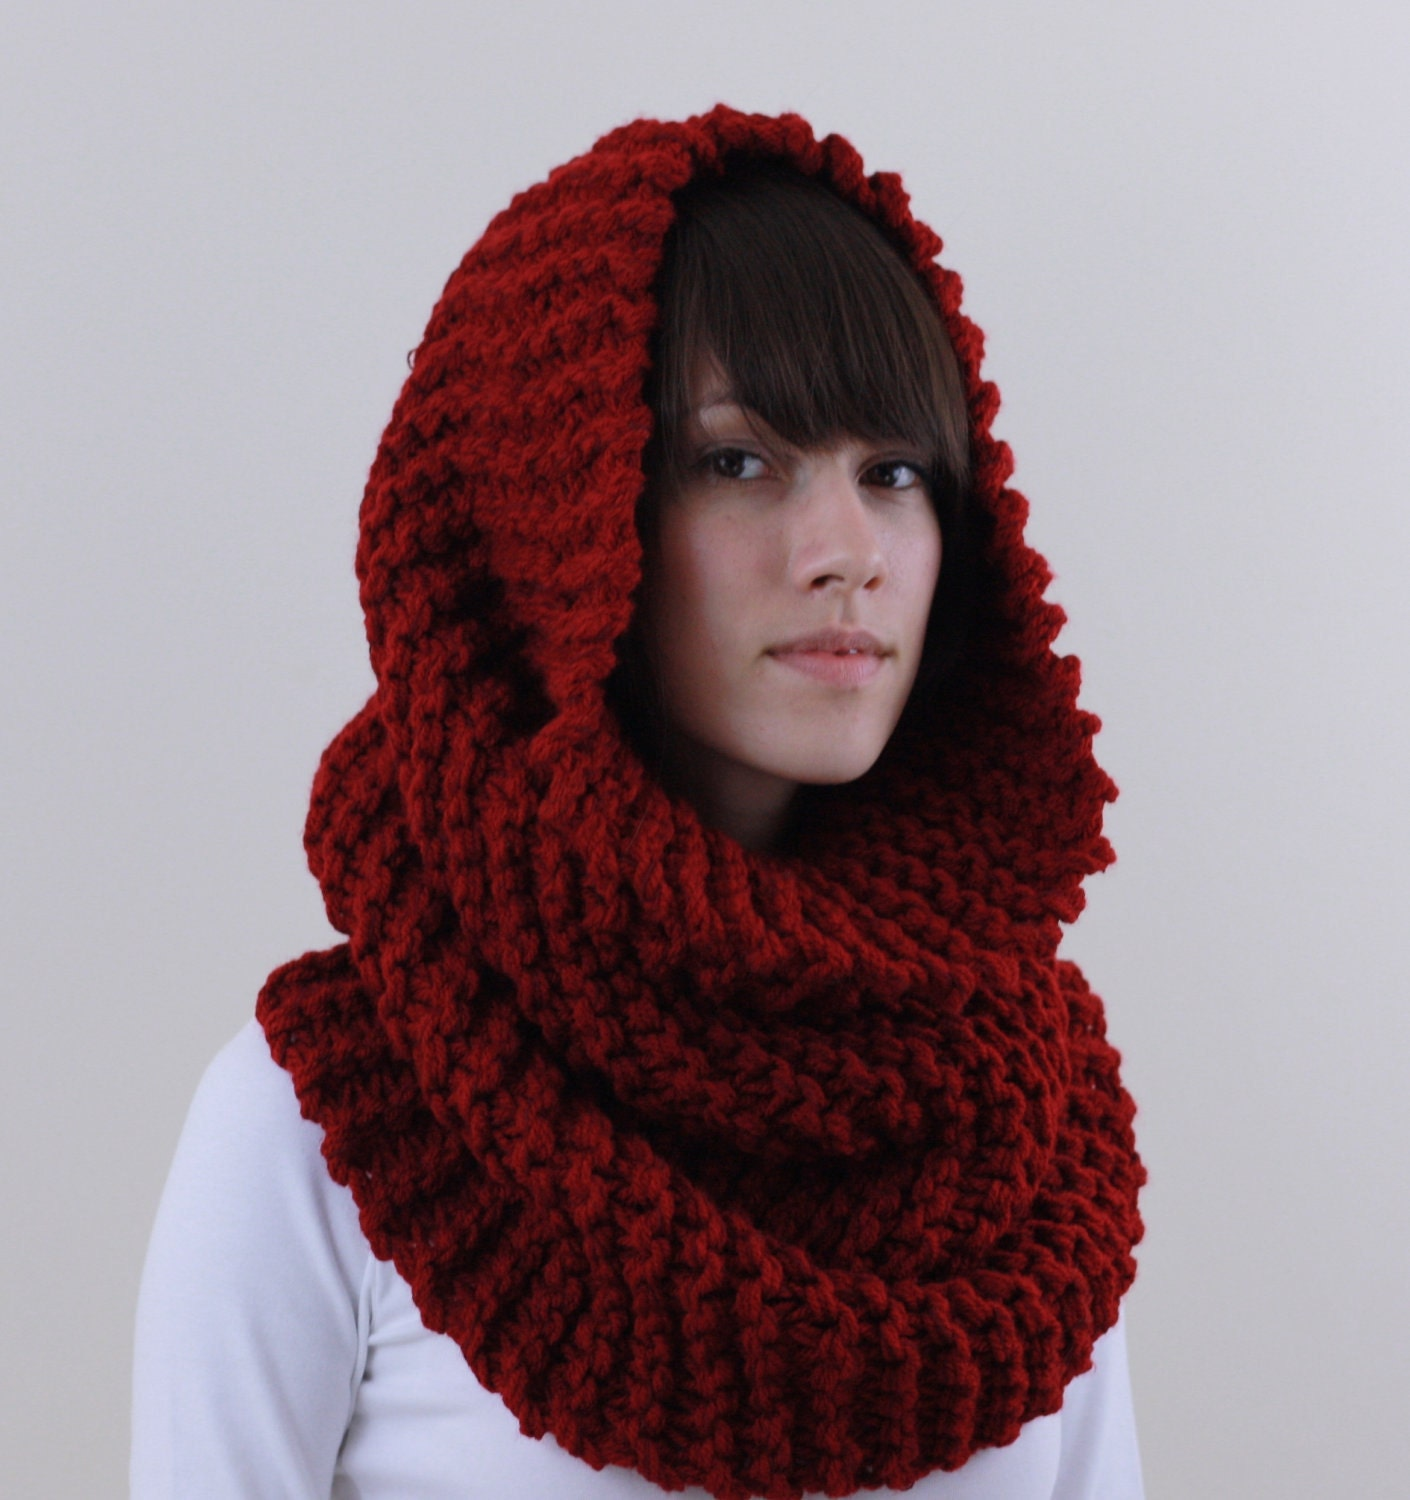 Knit Cowl Scarf Knit Oversized Chunky Red Cowl By Zukas On